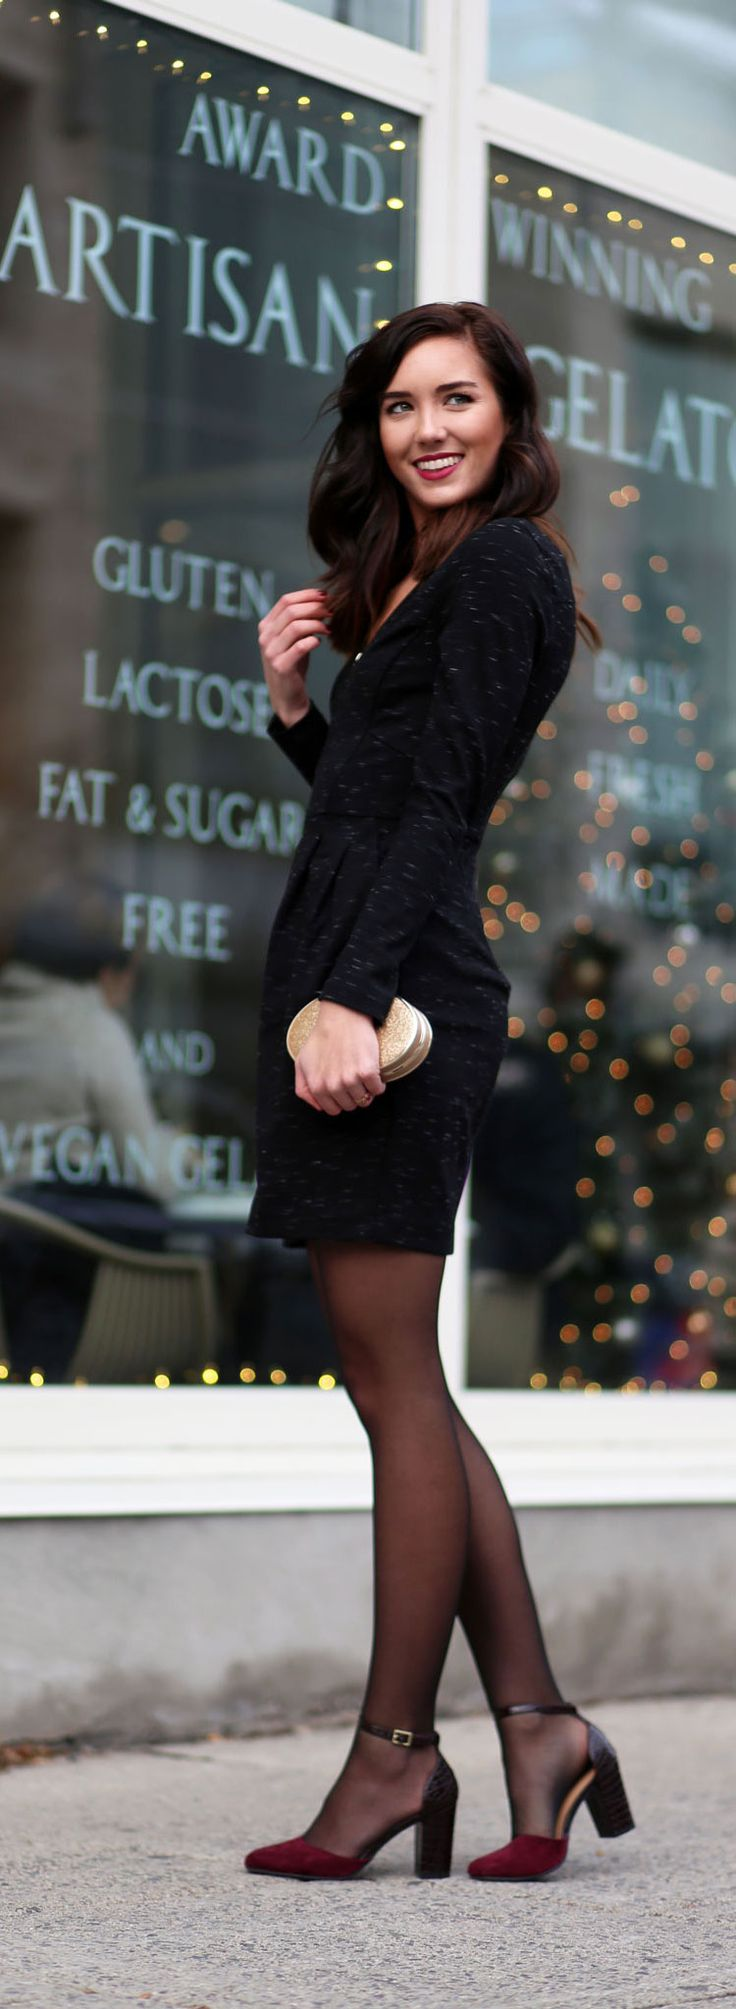 Black dress yellow heels - Holiday Idea Little Black Dress Less Than 60 With Statement Tights And Very